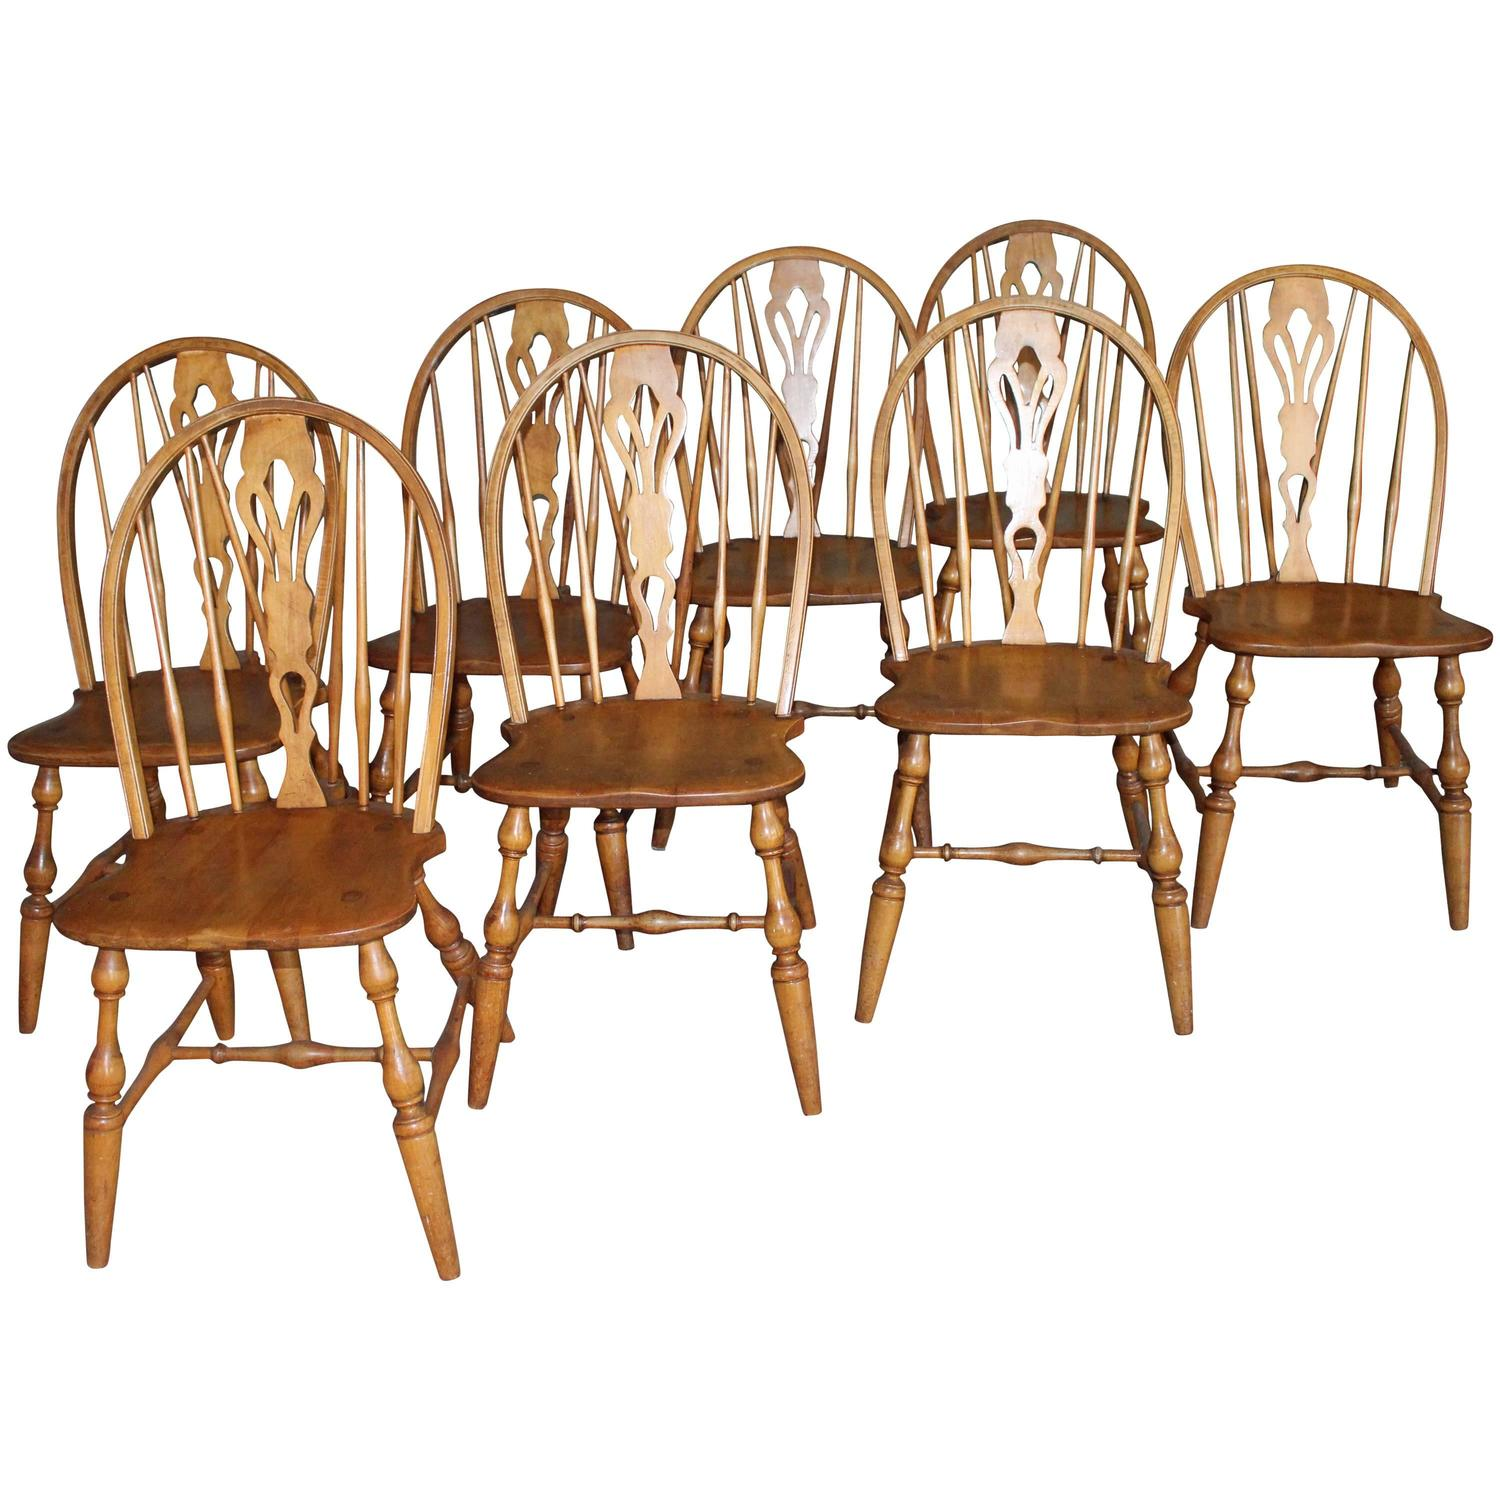 English Windsor Bow-Brace Back Dining Chairs with Decorative Splat For Sale at 1stdibs  sc 1 st  1stDibs & English Windsor Bow-Brace Back Dining Chairs with Decorative Splat ...